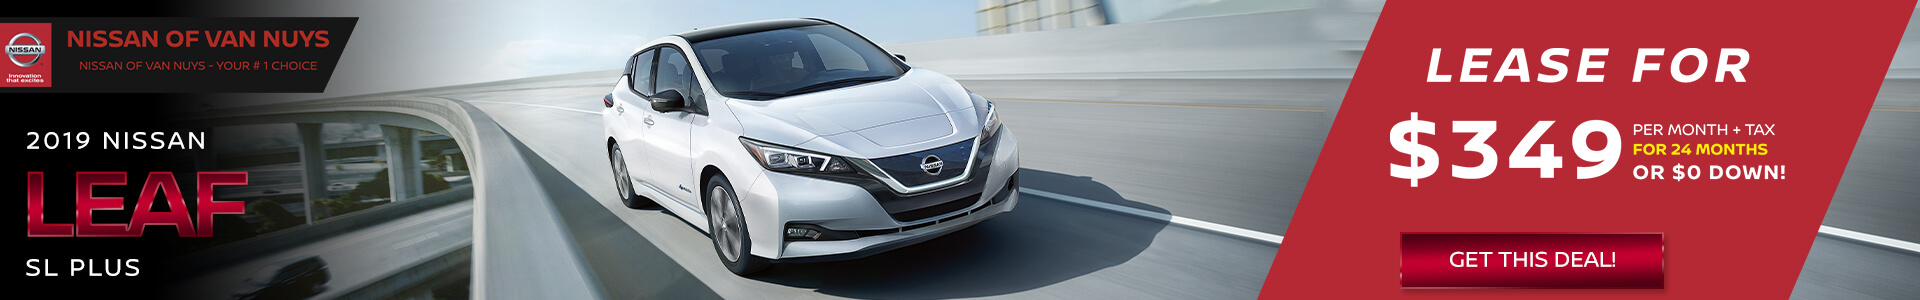 Nissan LEAF - Lease for $349